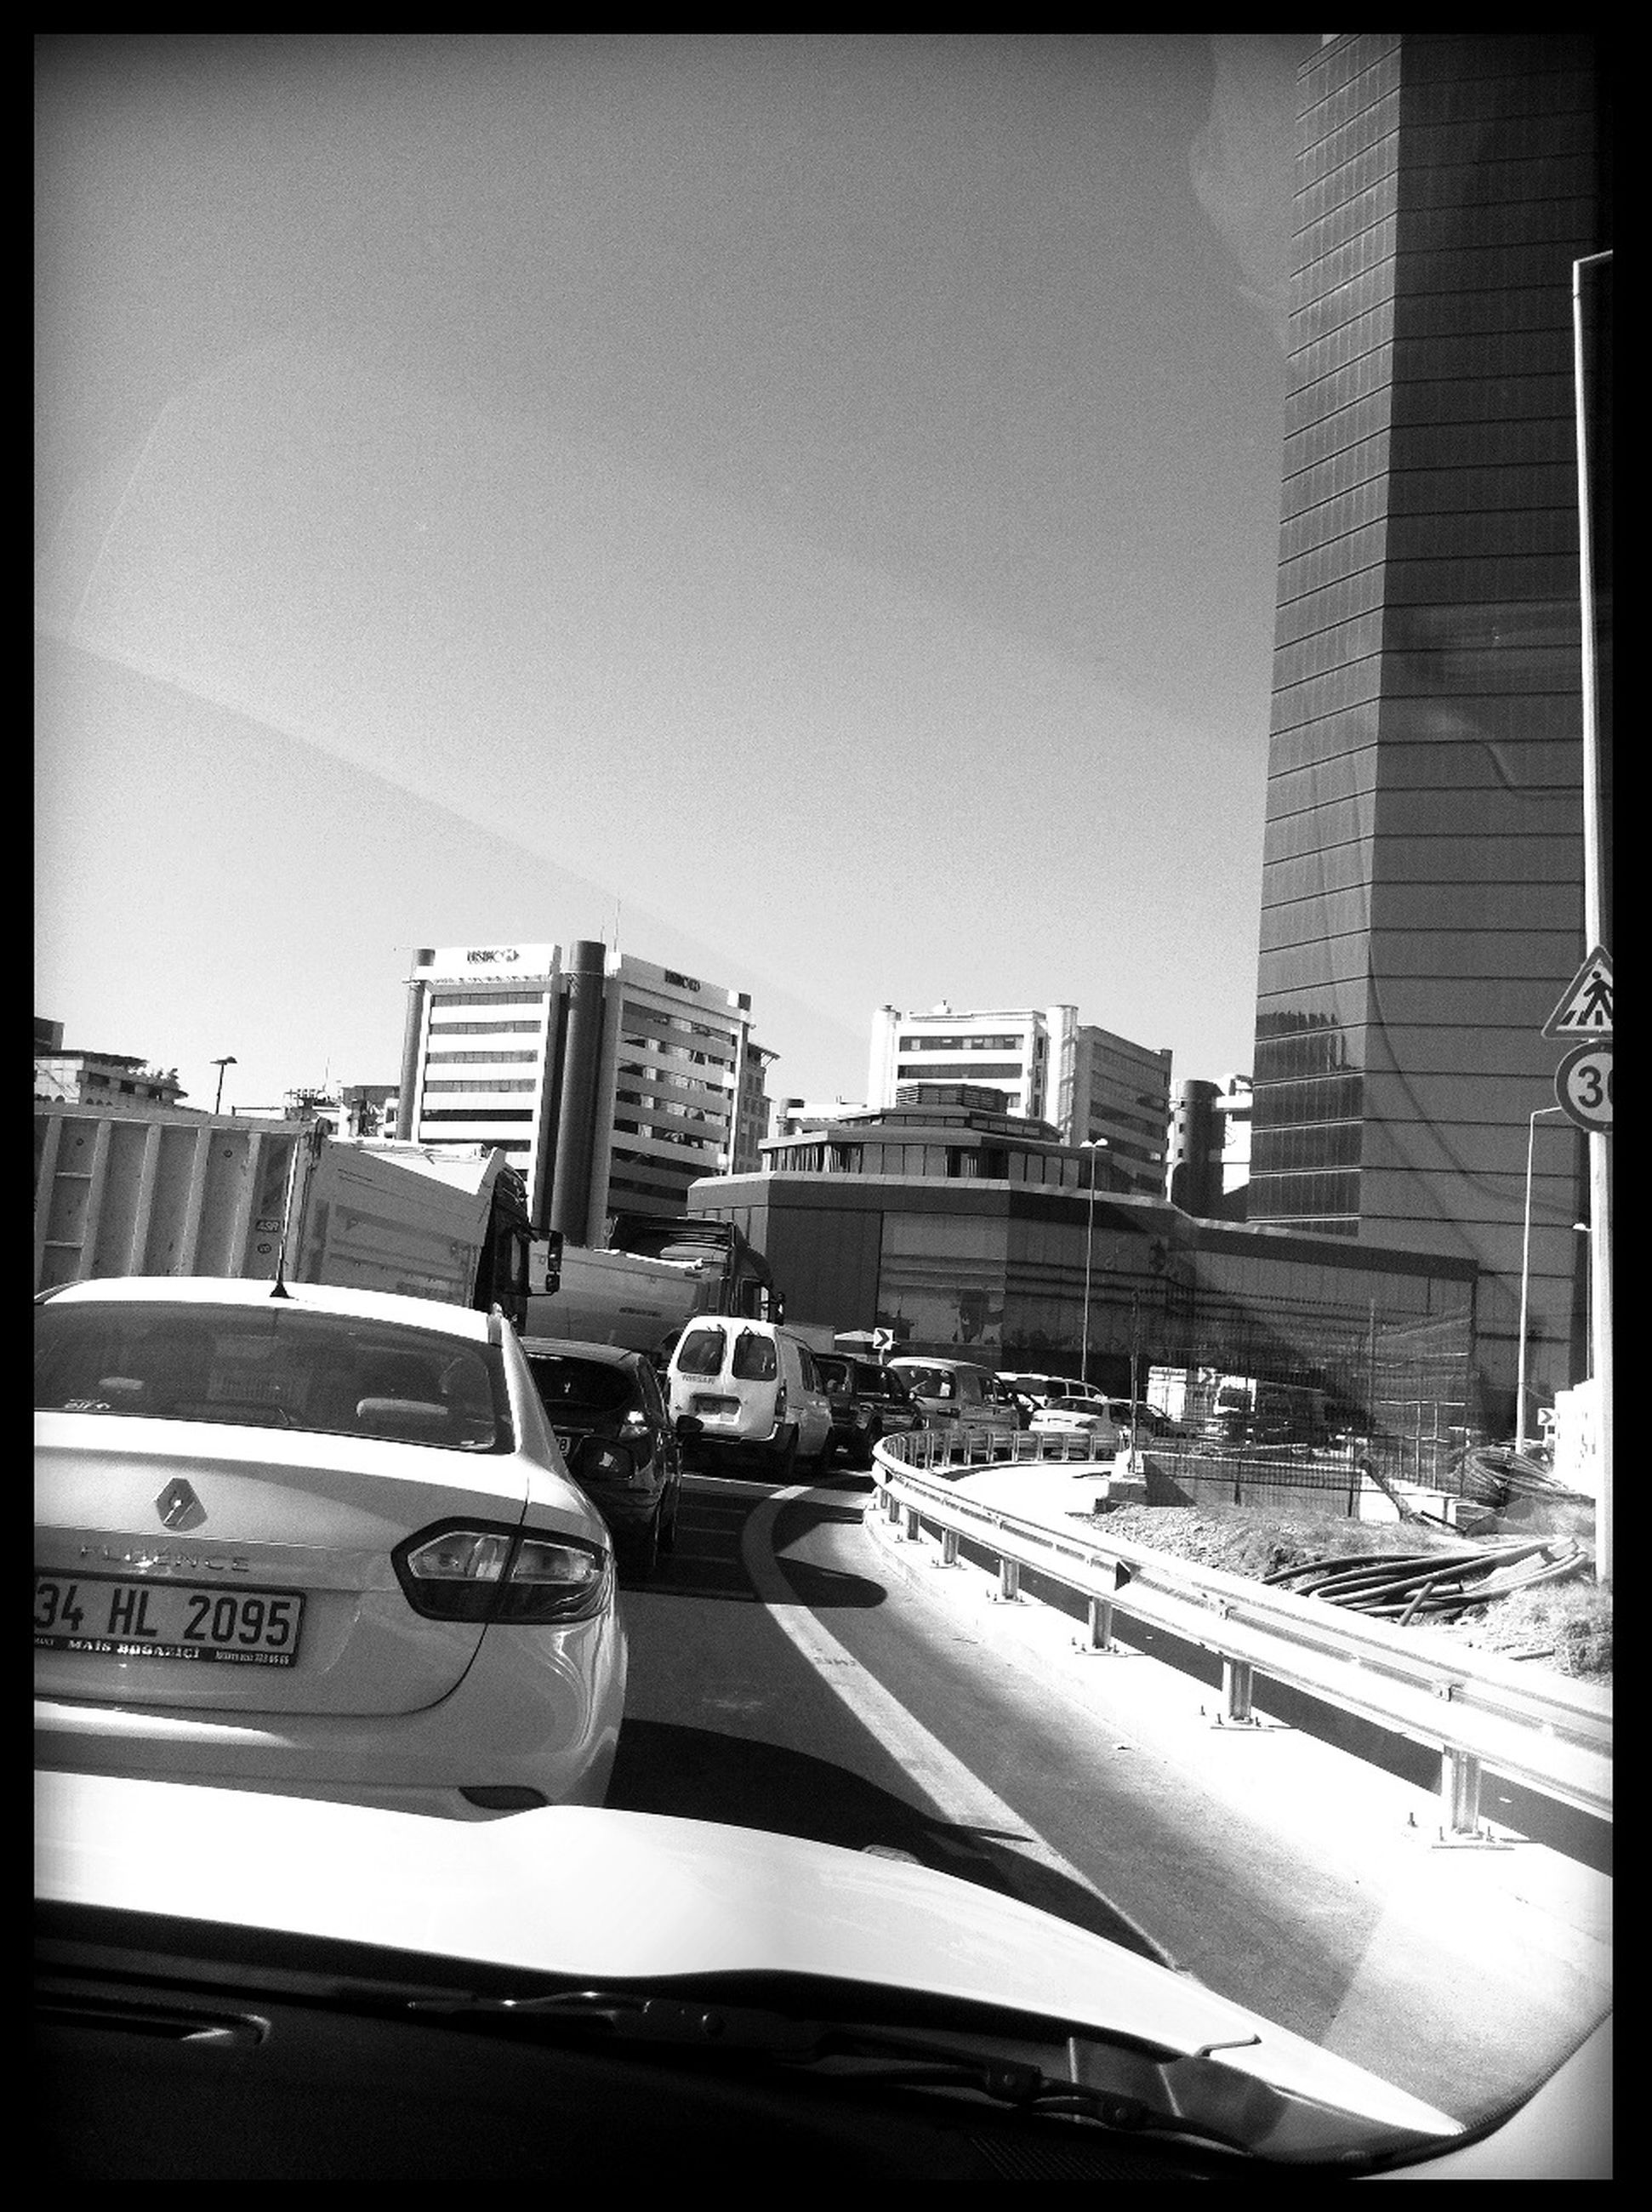 transfer print, transportation, car, building exterior, mode of transport, architecture, land vehicle, city, built structure, auto post production filter, clear sky, road, street, traffic, city life, travel, city street, day, on the move, sky